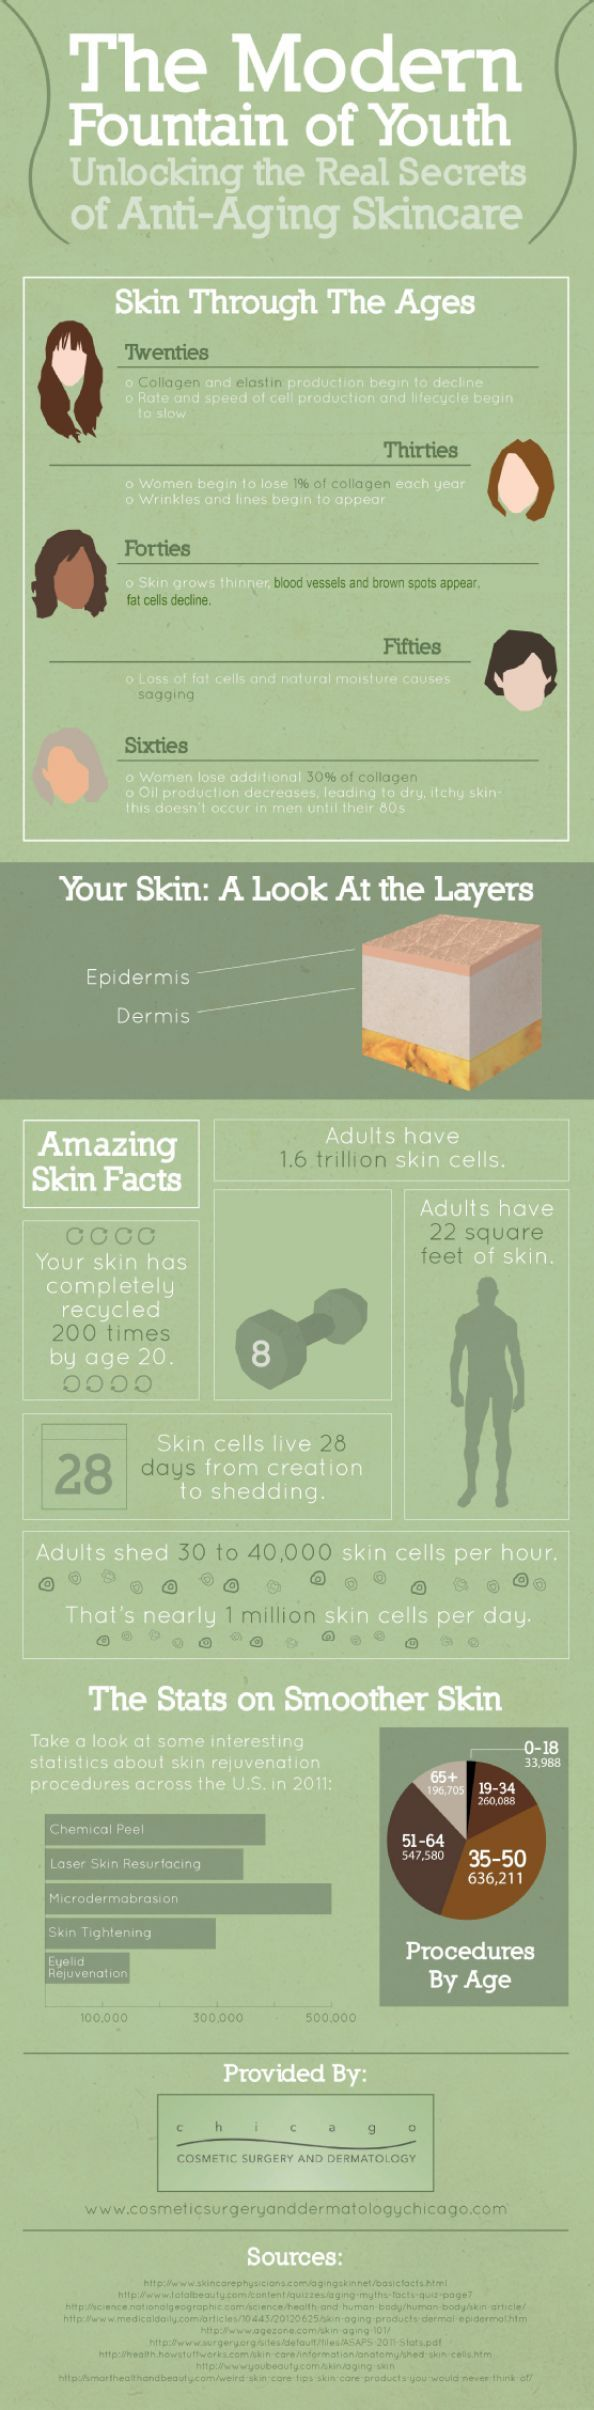 Skin facts. Very interesting!Anti Ag Skincare, Skin Care, Modern Fountain, Fountain Of Youth, Antiaging Skincare, Anti Age, Real Secret, Skincare Infographic, Anti Aging